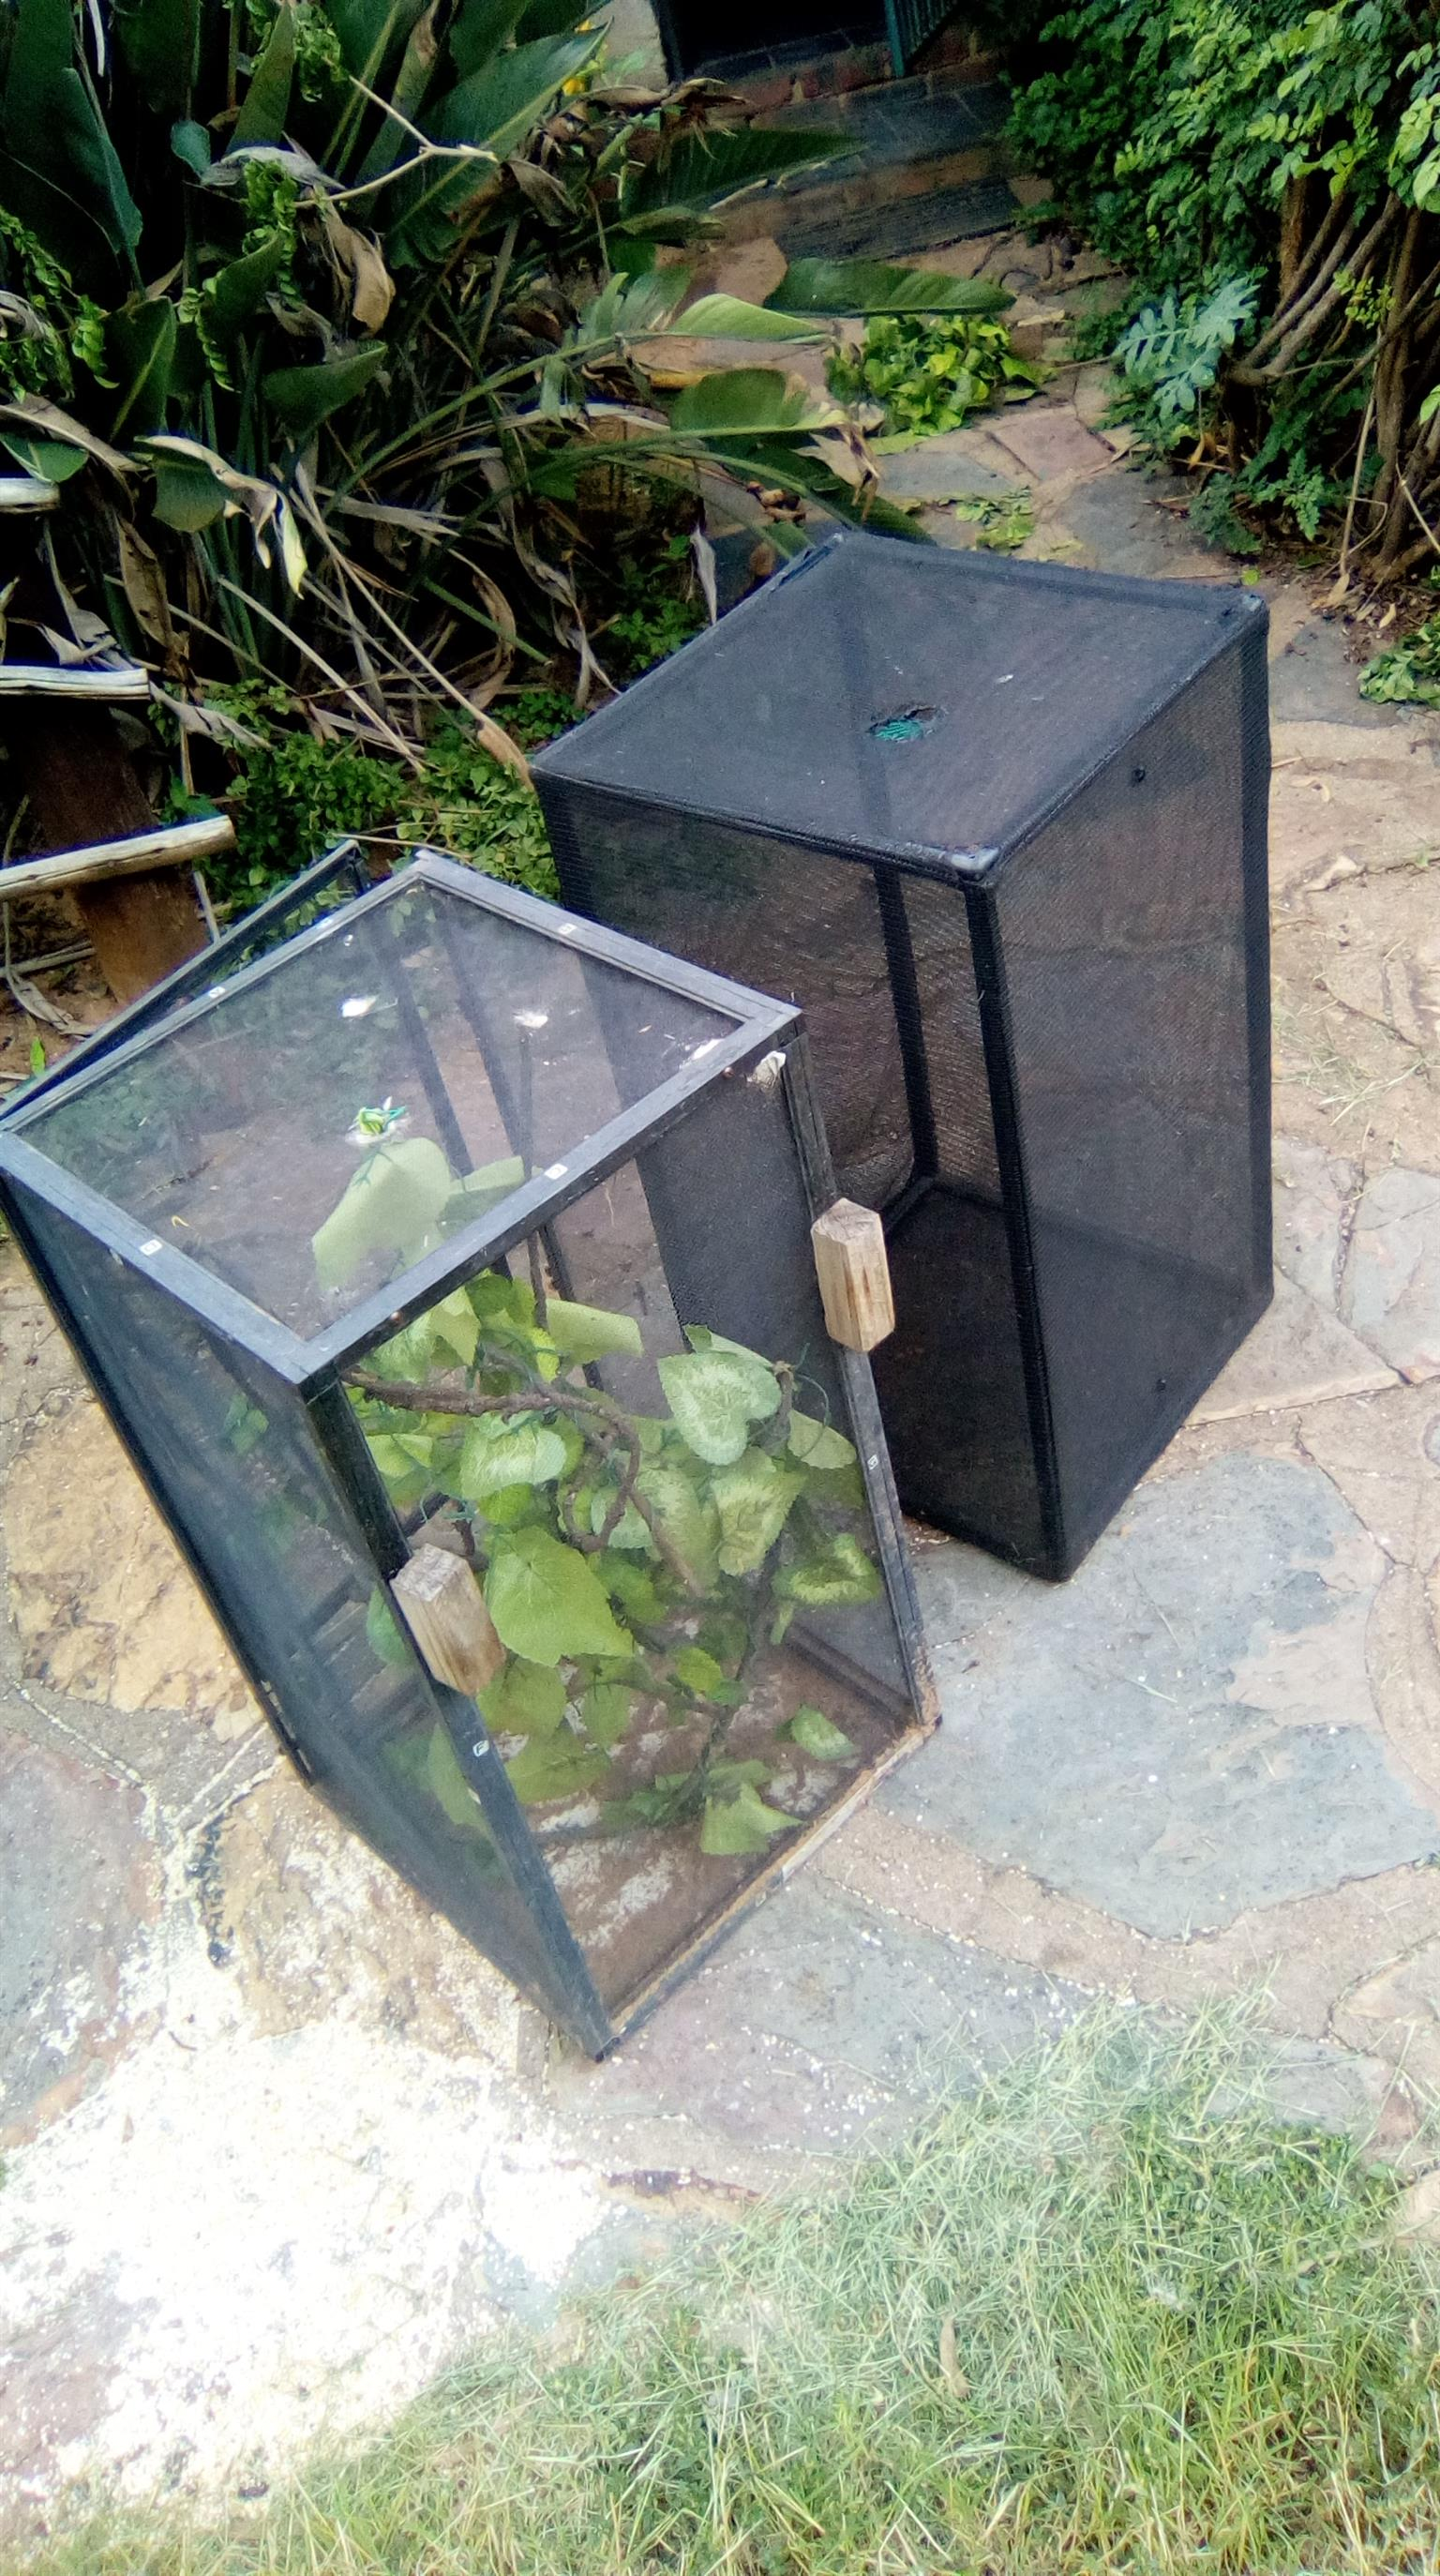 2 X reptile cages Approx. 660MMhigh  x 410mm length